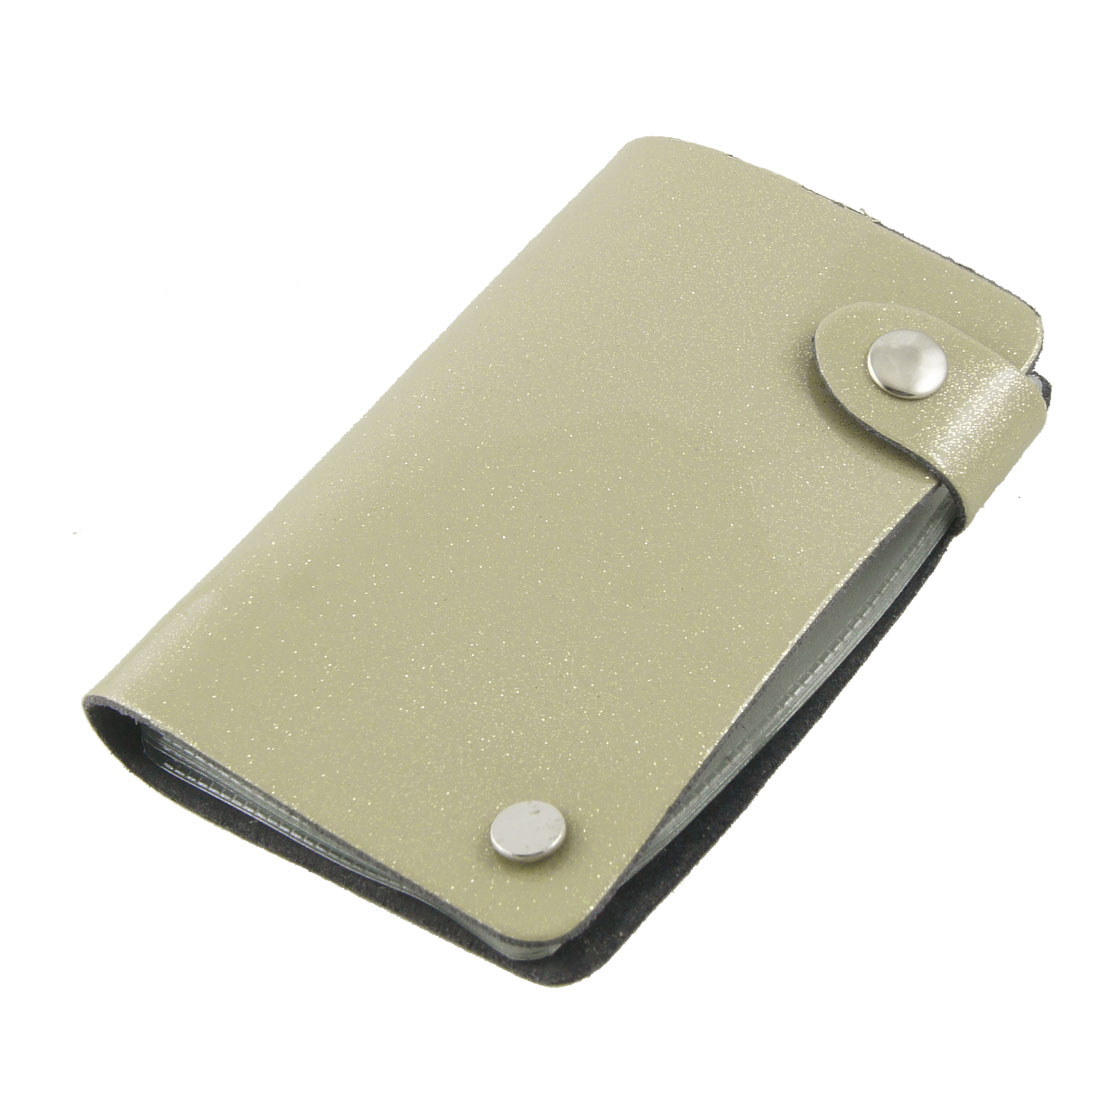 Glittery Khaki Faux Leather 10 Sheets Capacity Business Card Holder